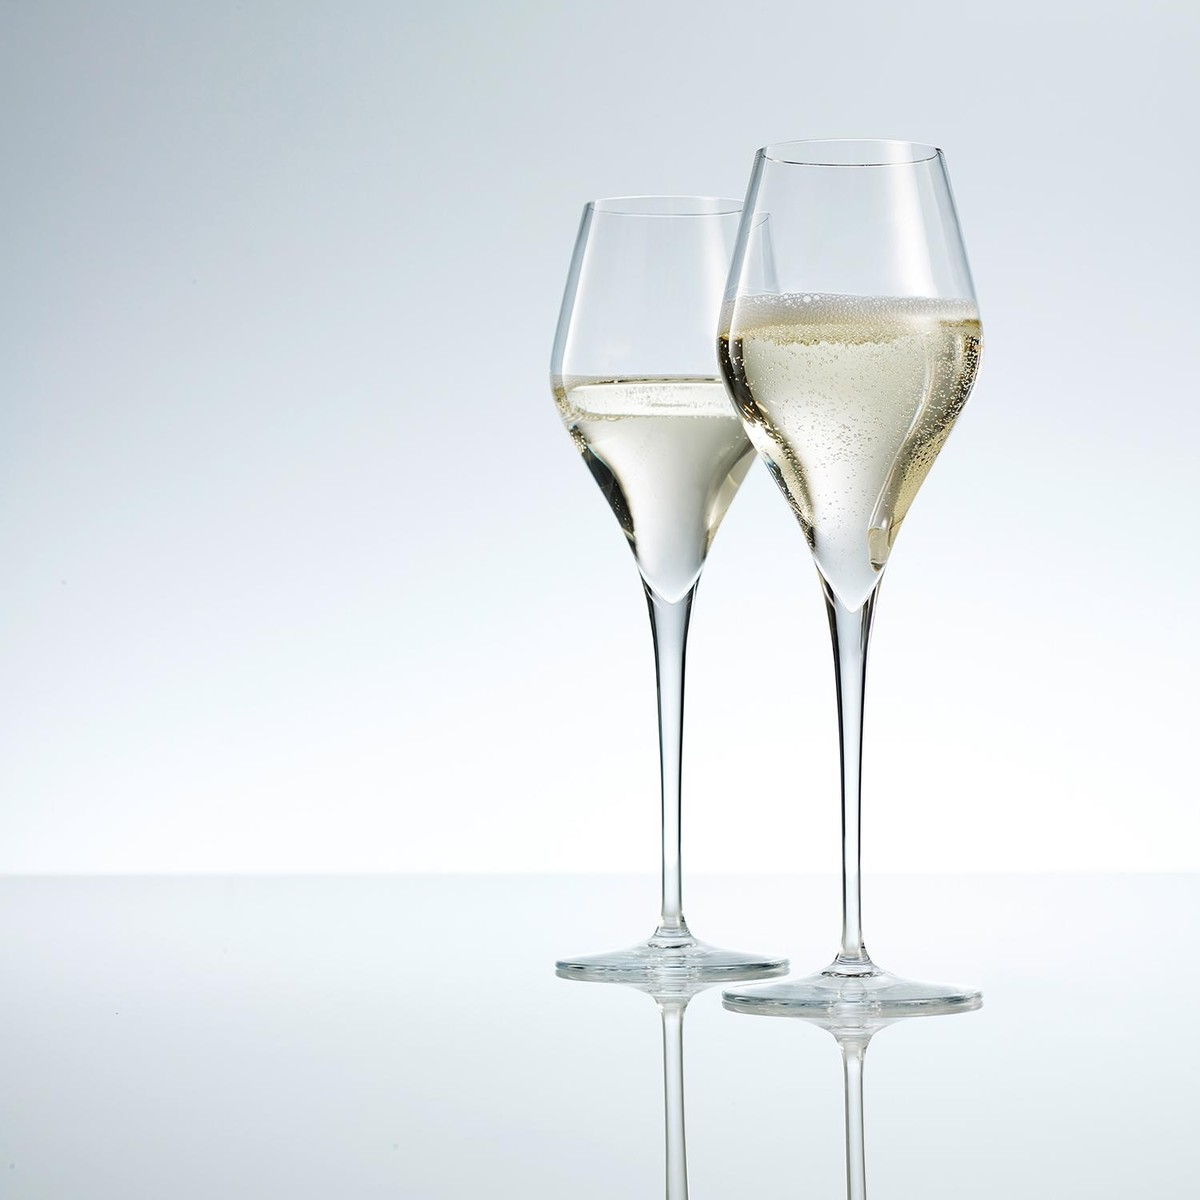 Fortessa Tableware | Schott Zwiesel Diva Wine Glasses | Schott Zwiesel Wine Glasses